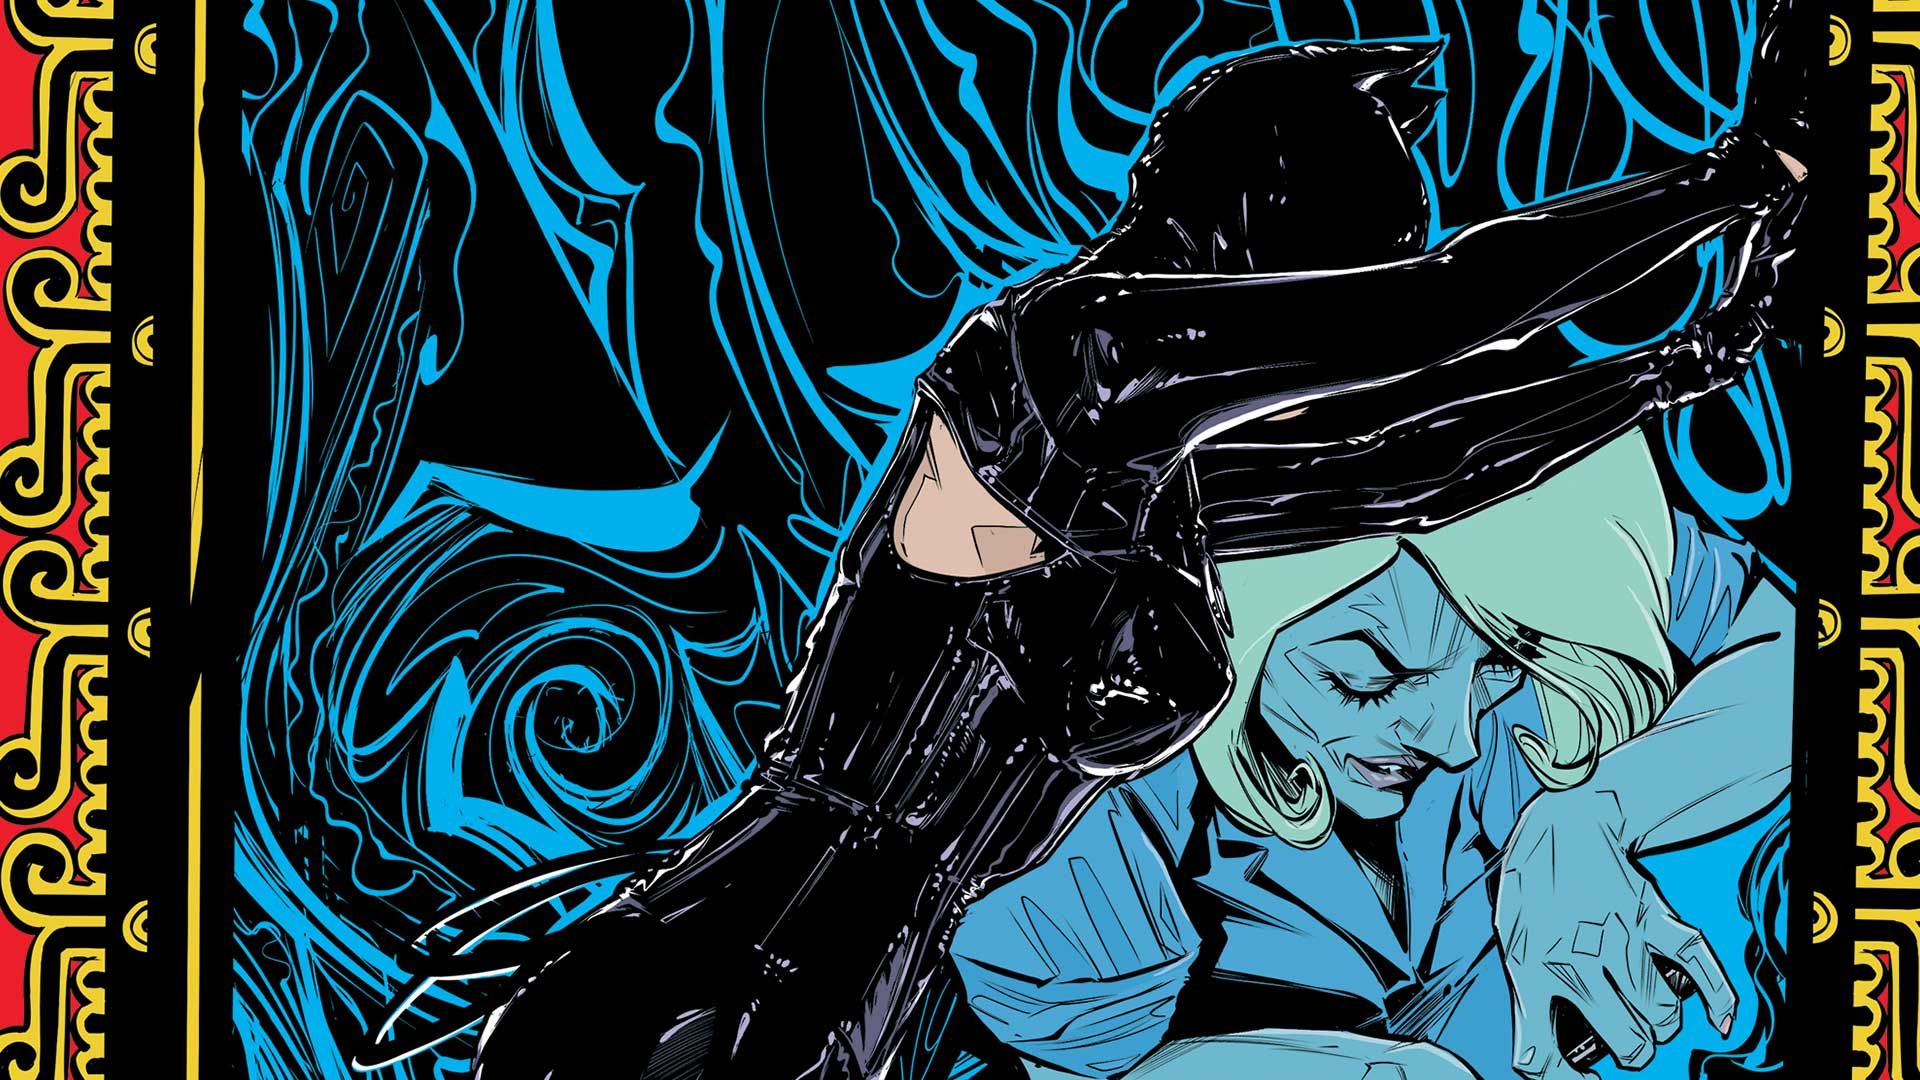 JJ and Eric share their favorite covers from this week's new comics.